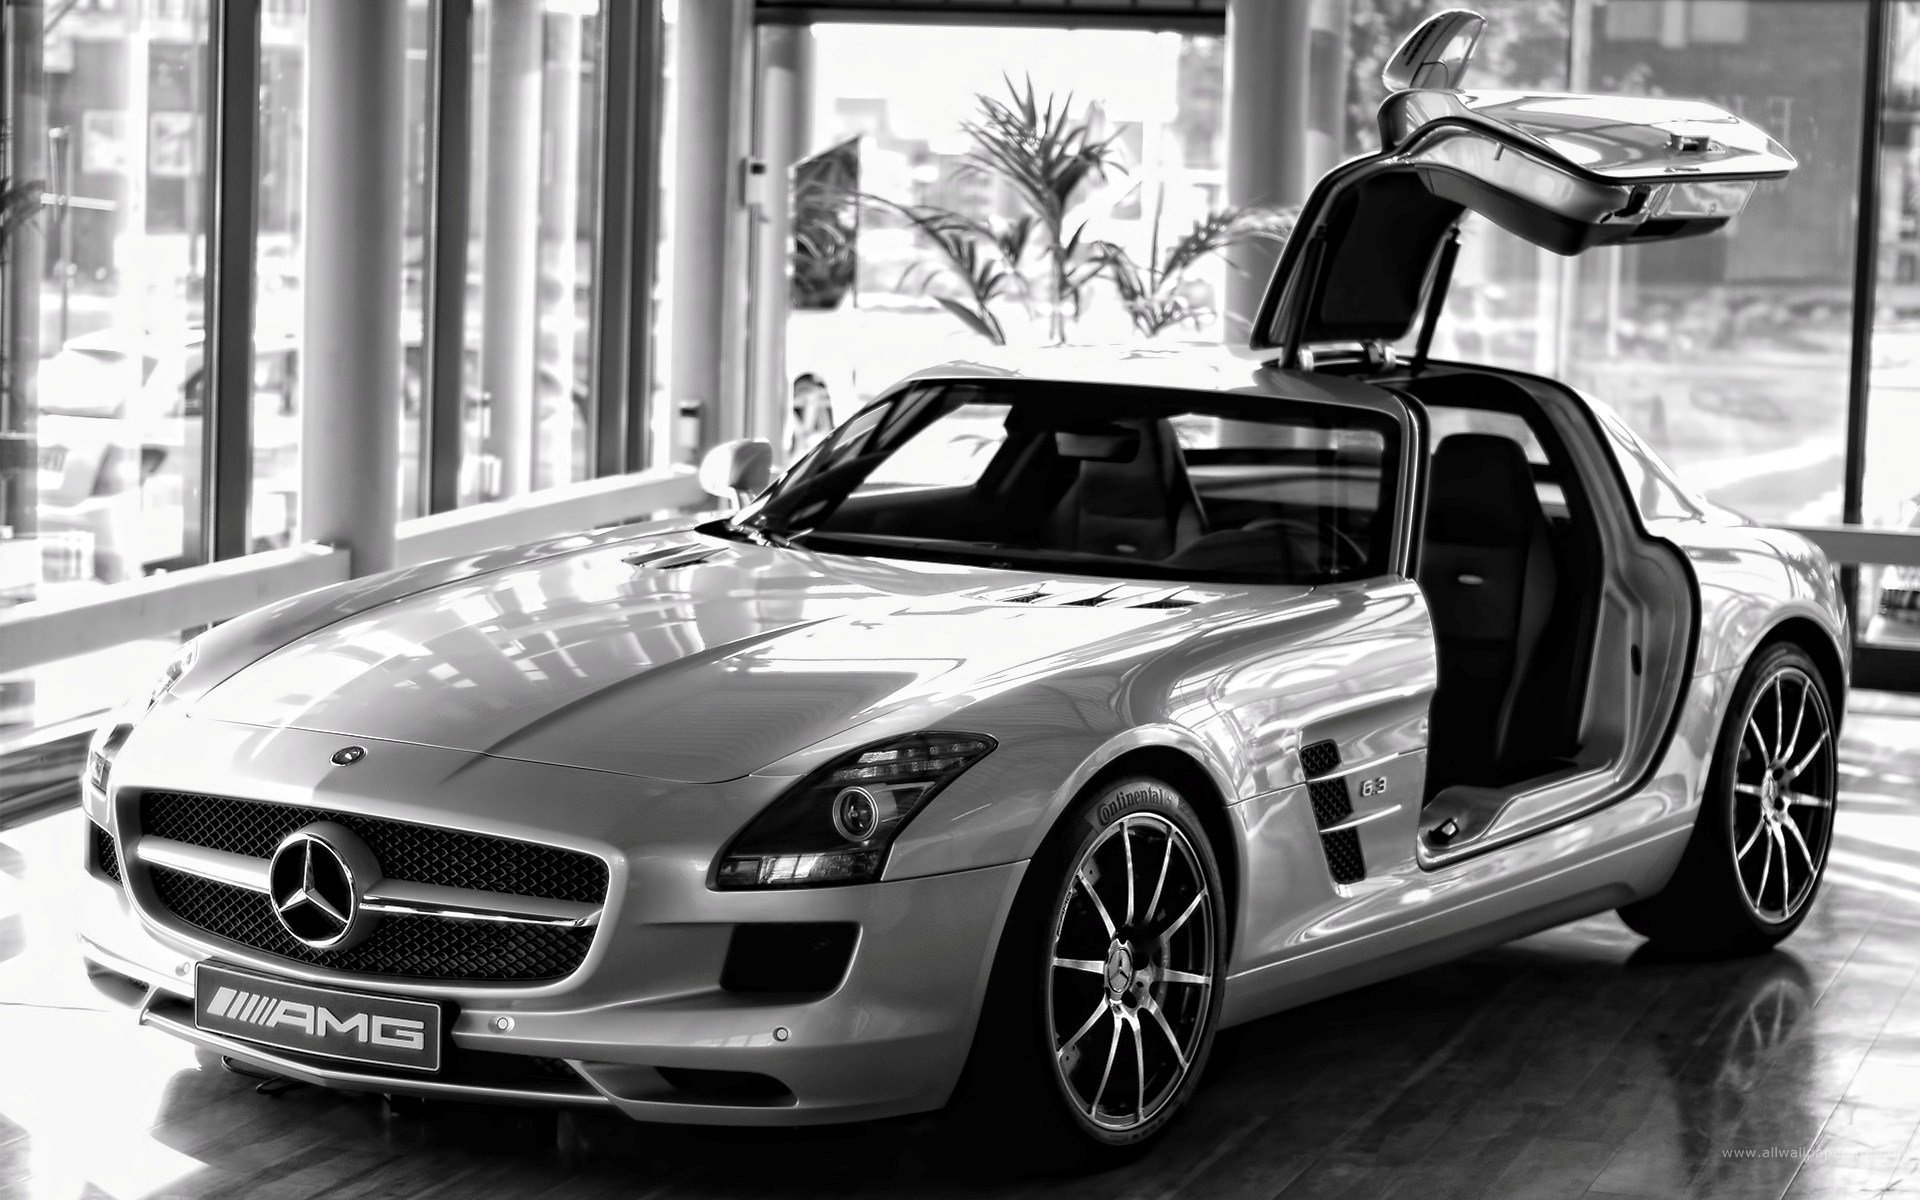 Latest New Mercedes Amg Luxury Car Hd Wallpaper Hd Wallpapers Free Download